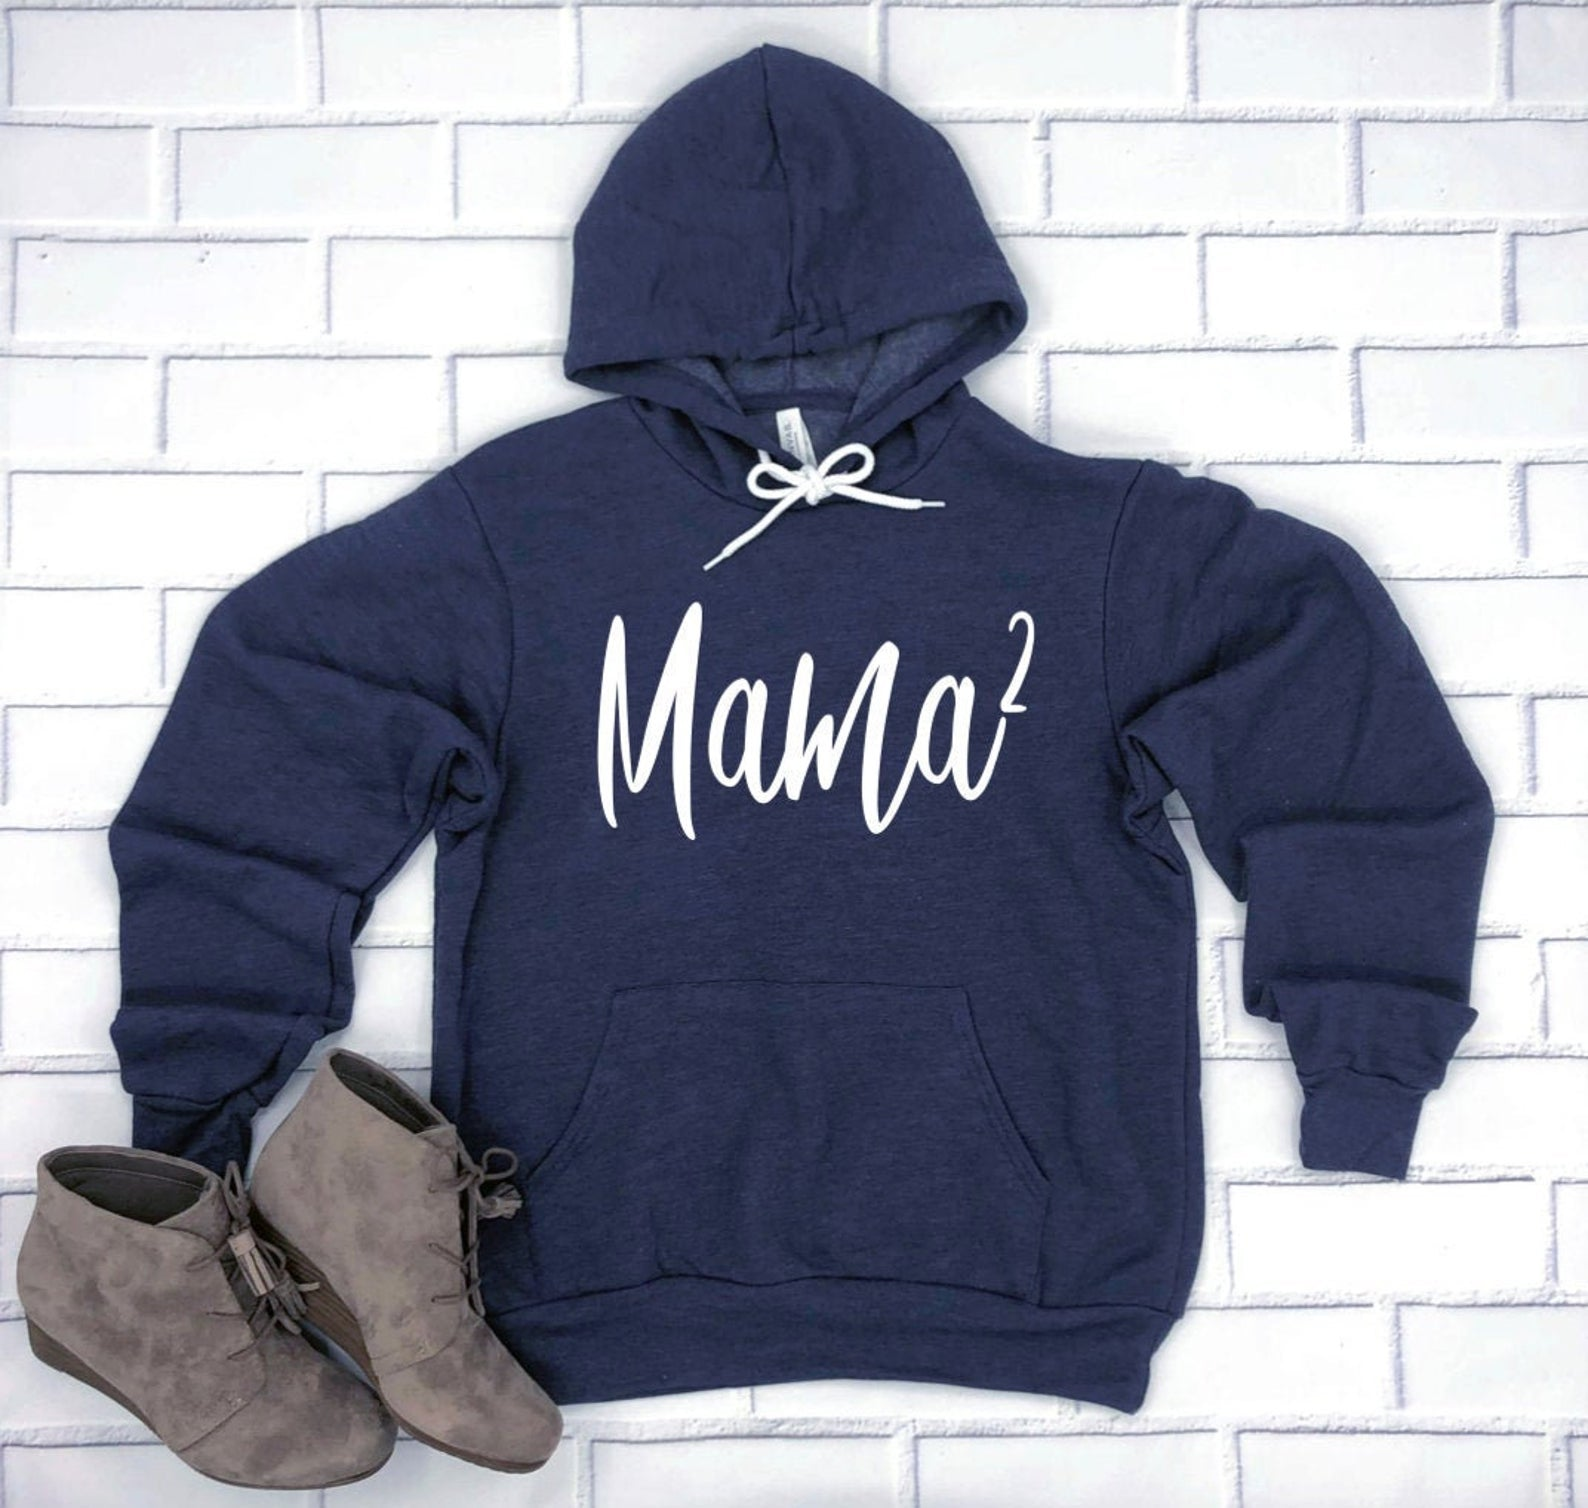 Mama 2 Hoodie Pullover Sweatshirt - Mom Hoodie - Mom Of 2 - Mama Squared - Gift For Mom - Mother's Day Gift - Math Mama